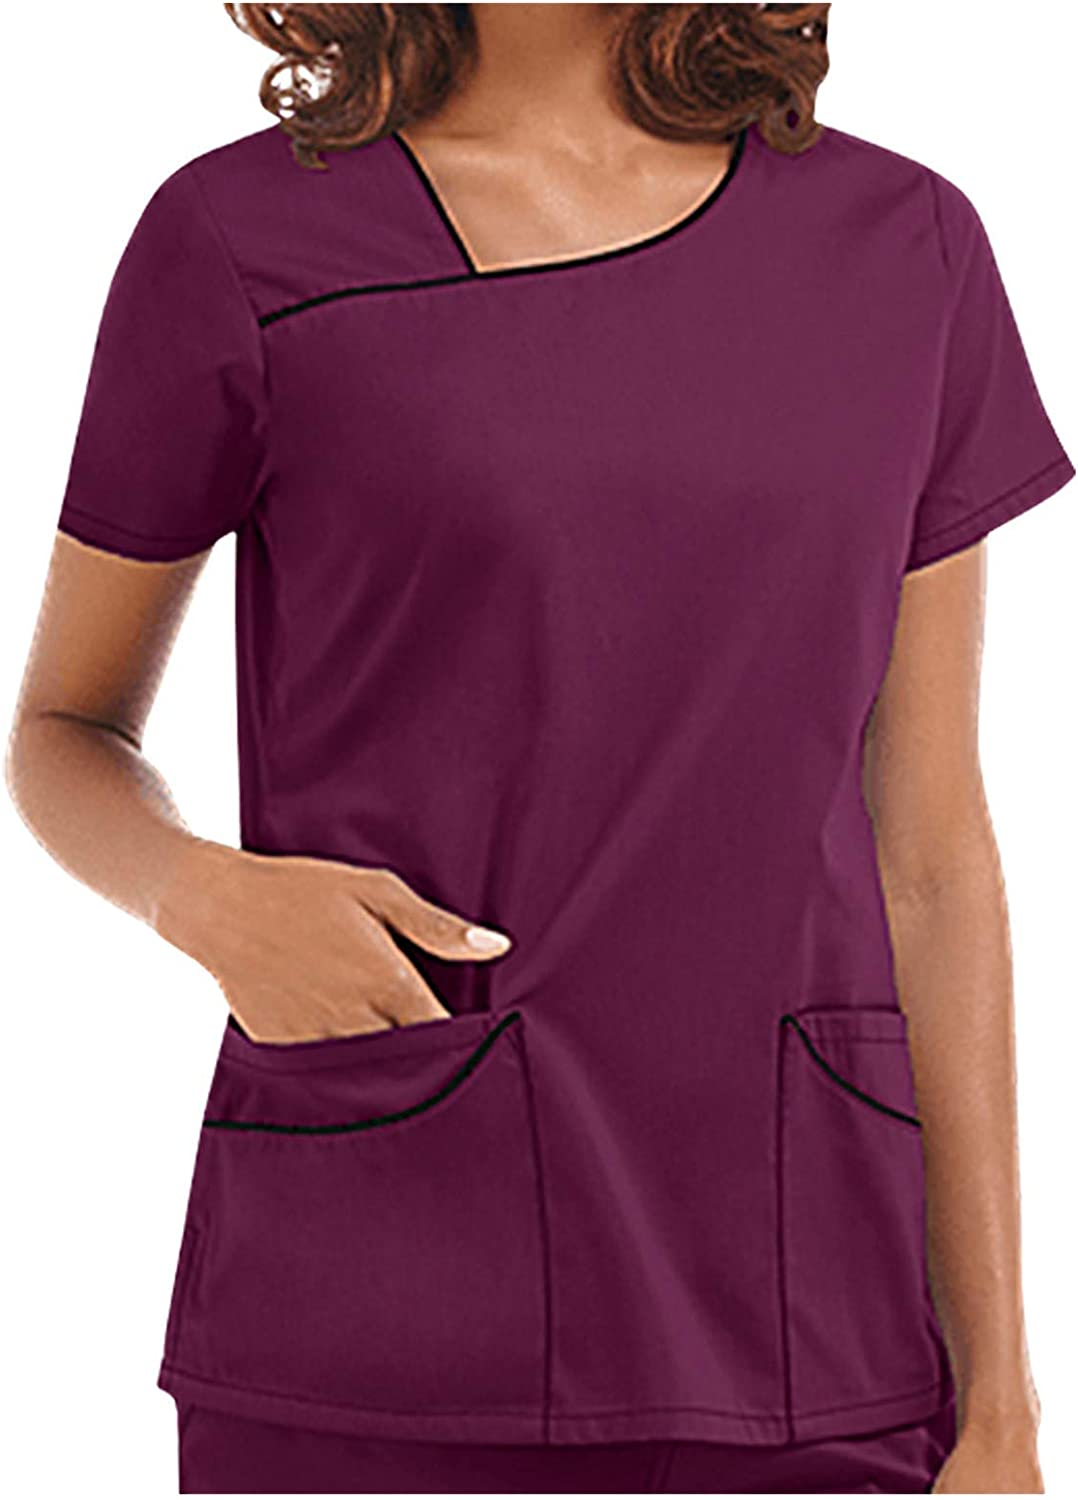 Scrub_Top for Women Short Sleeve Care Workers Nursing Shirts Wor